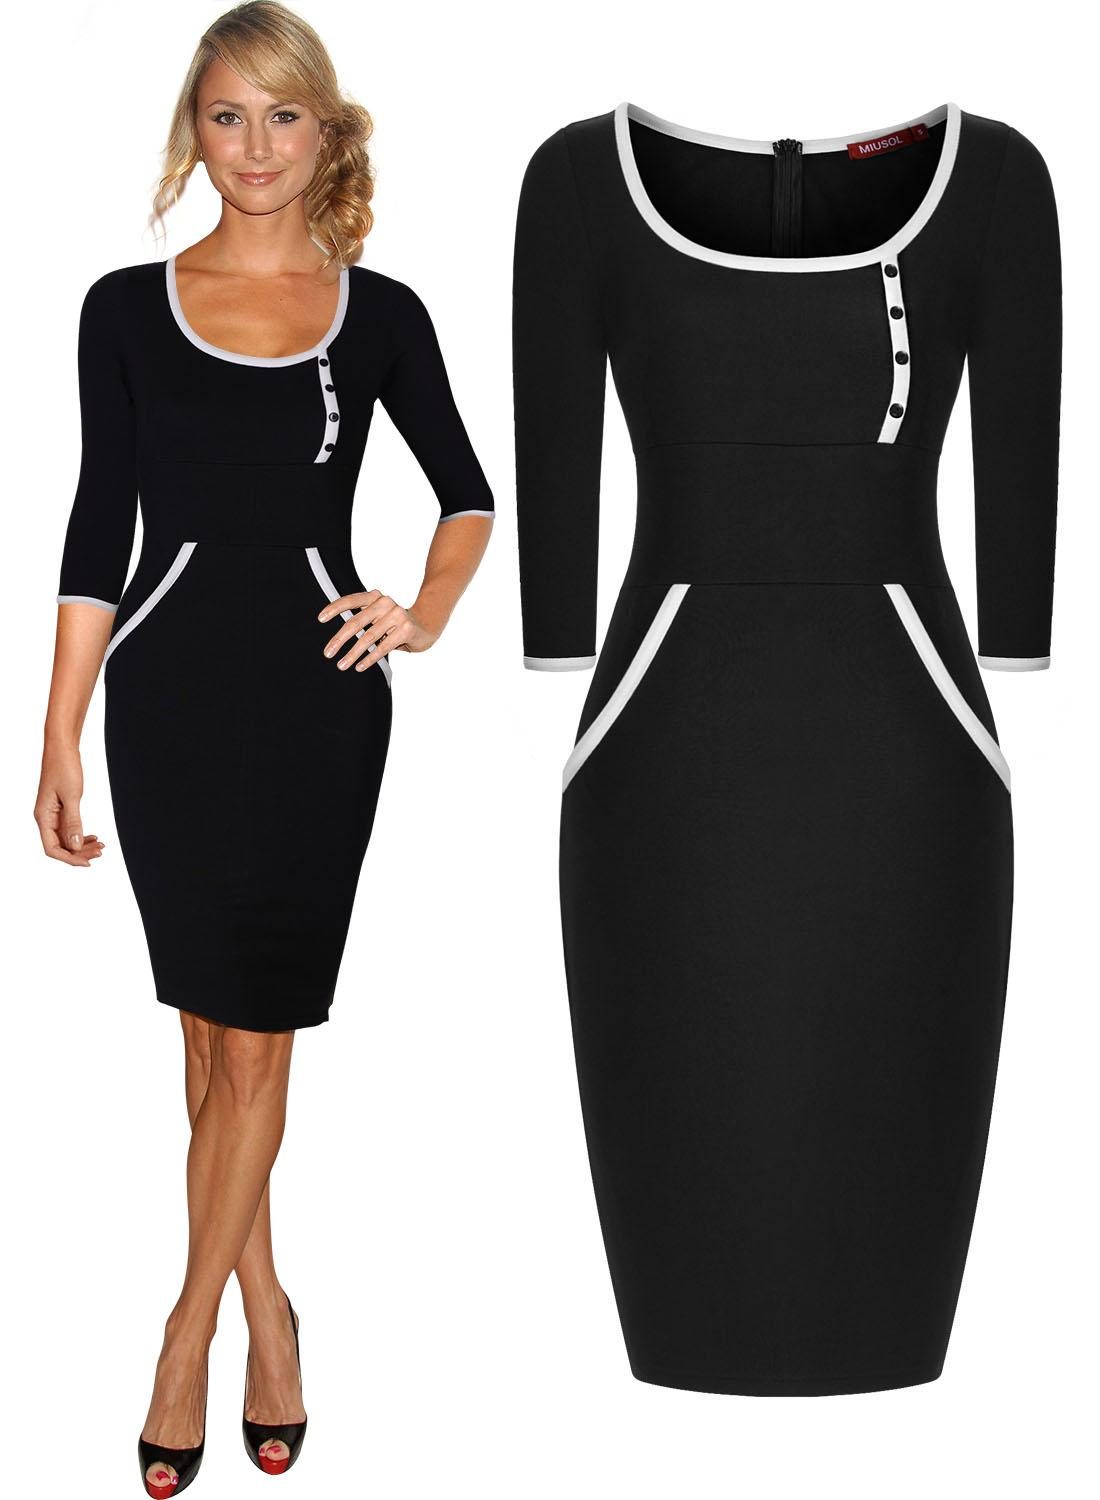 Women s Celeb Bodycon Evening Sexy Pencil Party Cocktail Work Casual  Dresses Work Dress 3122 Women Dress Work Dress Pencil Dresses Online with   35.92 Piece ... 227b434e63da